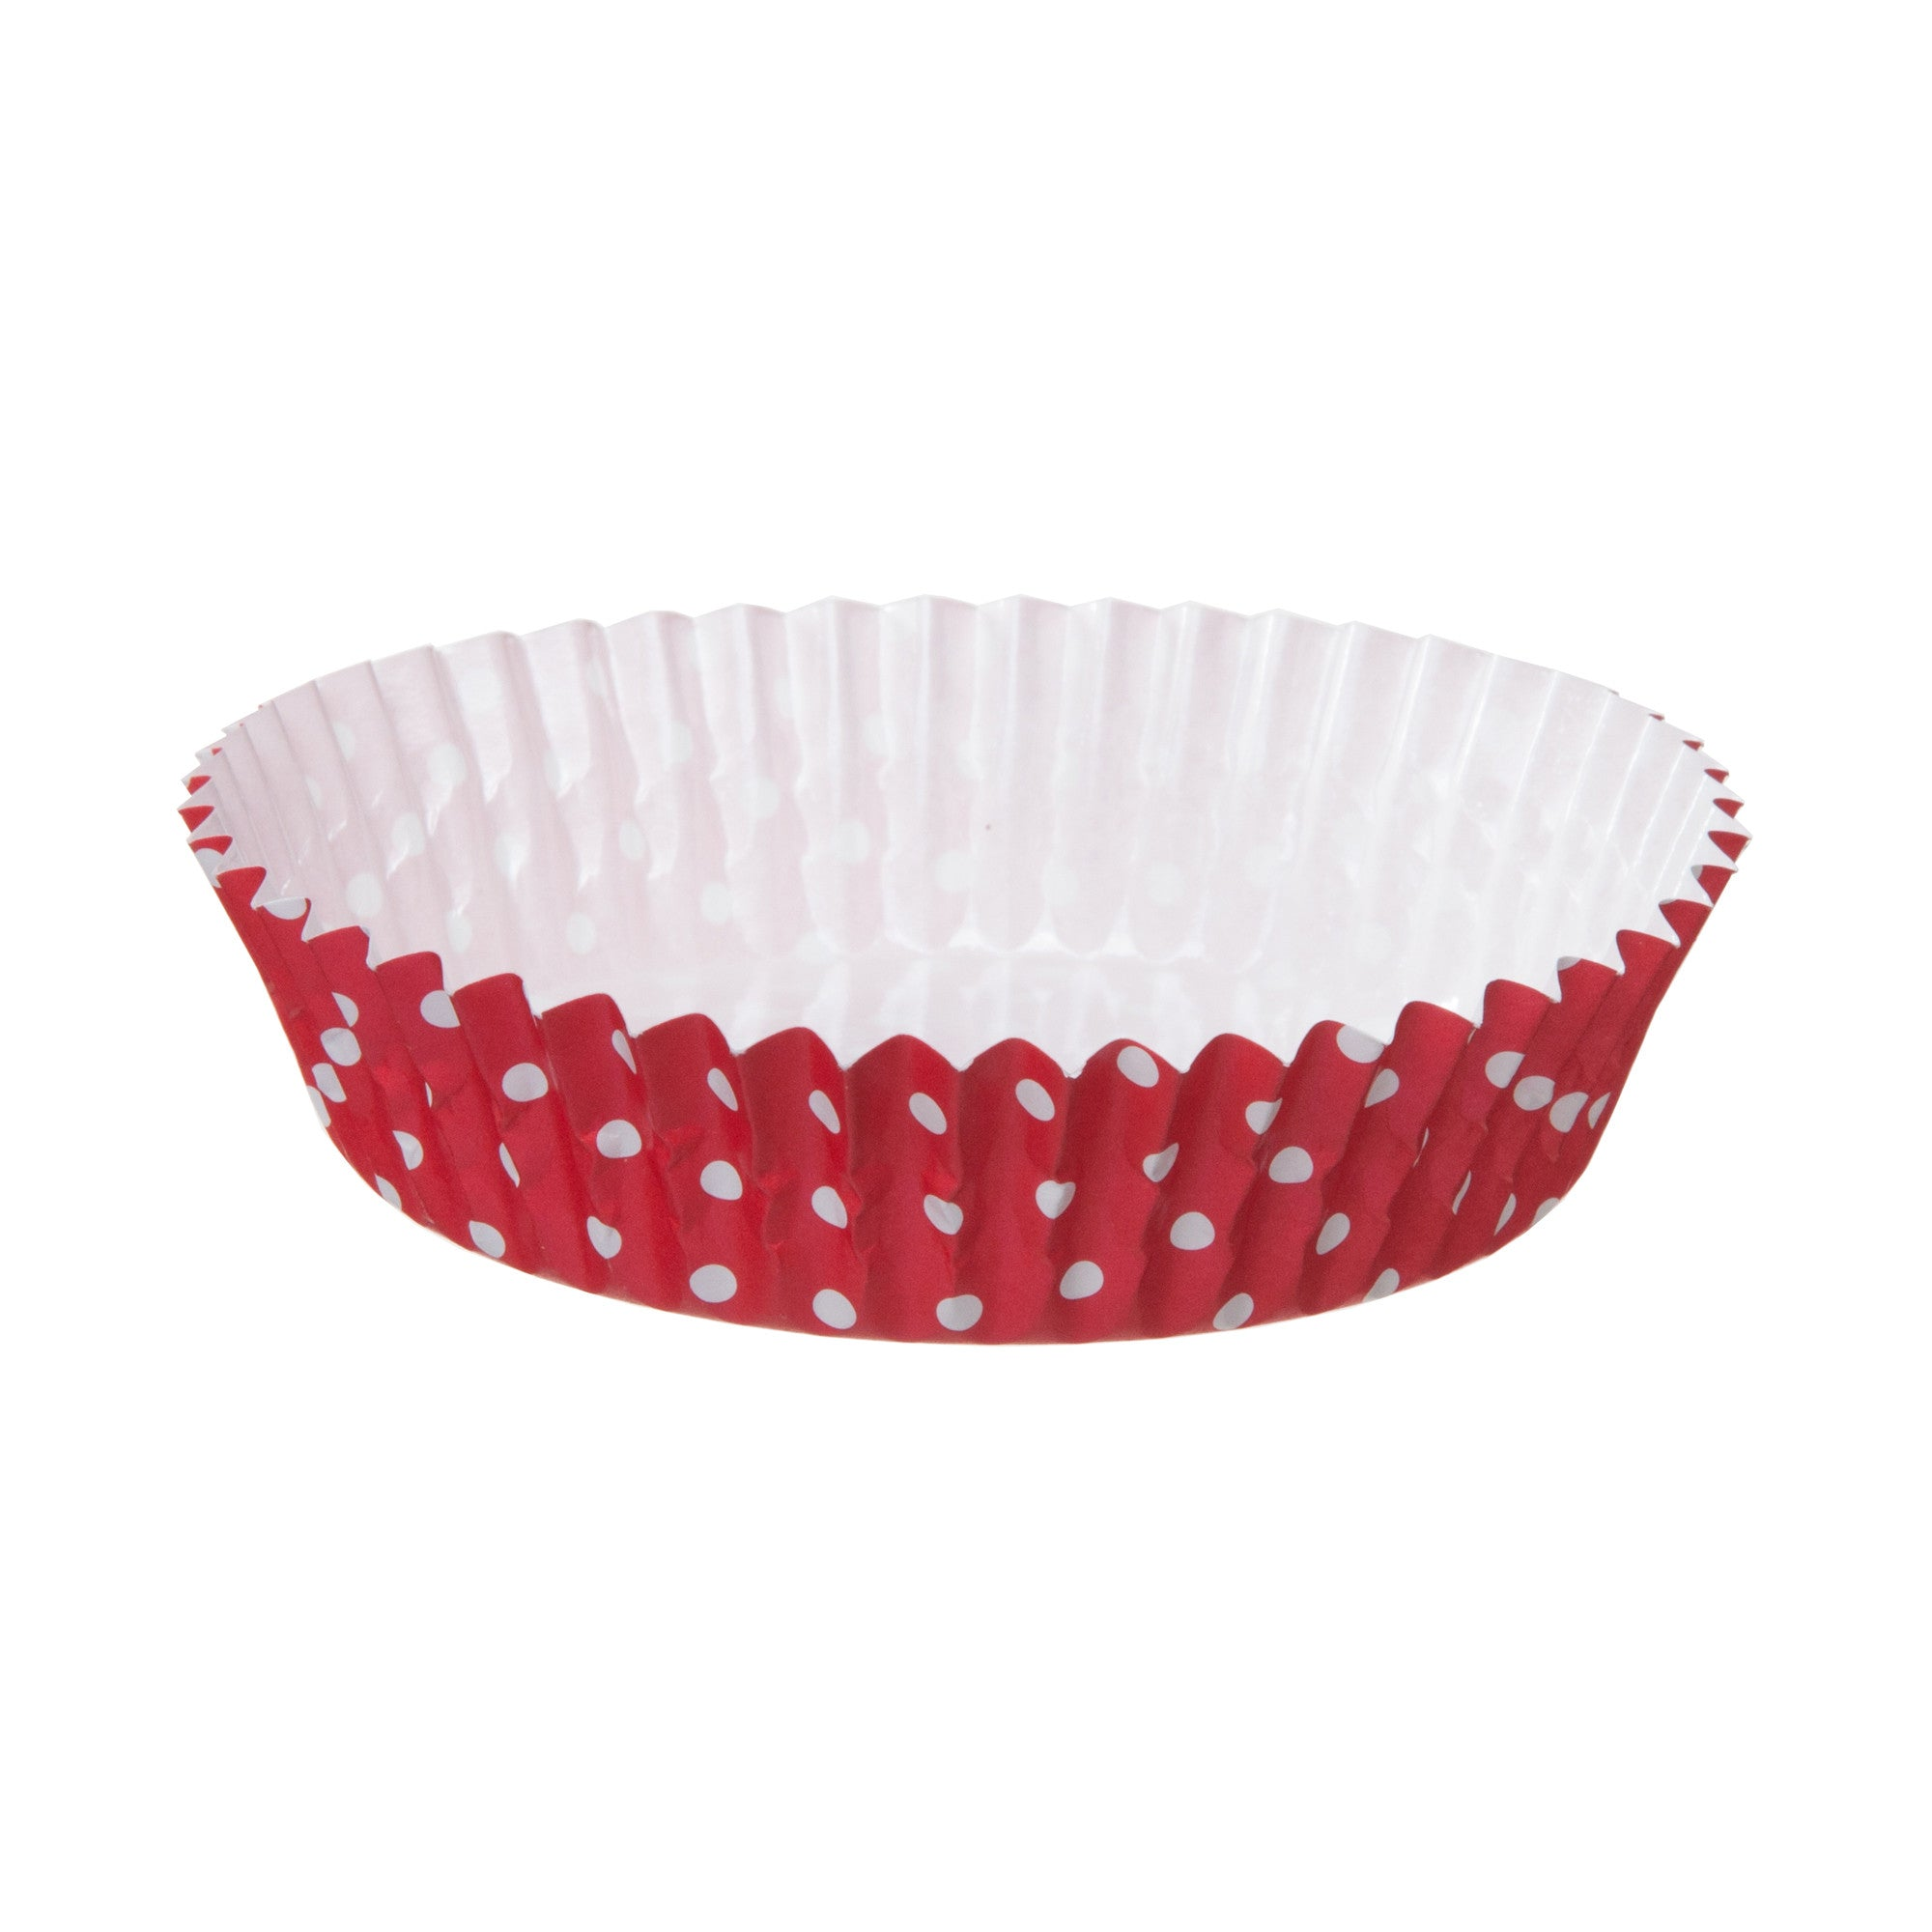 Ruffled Baking Cups, PTC10030WDRB - Welcome Home Brands